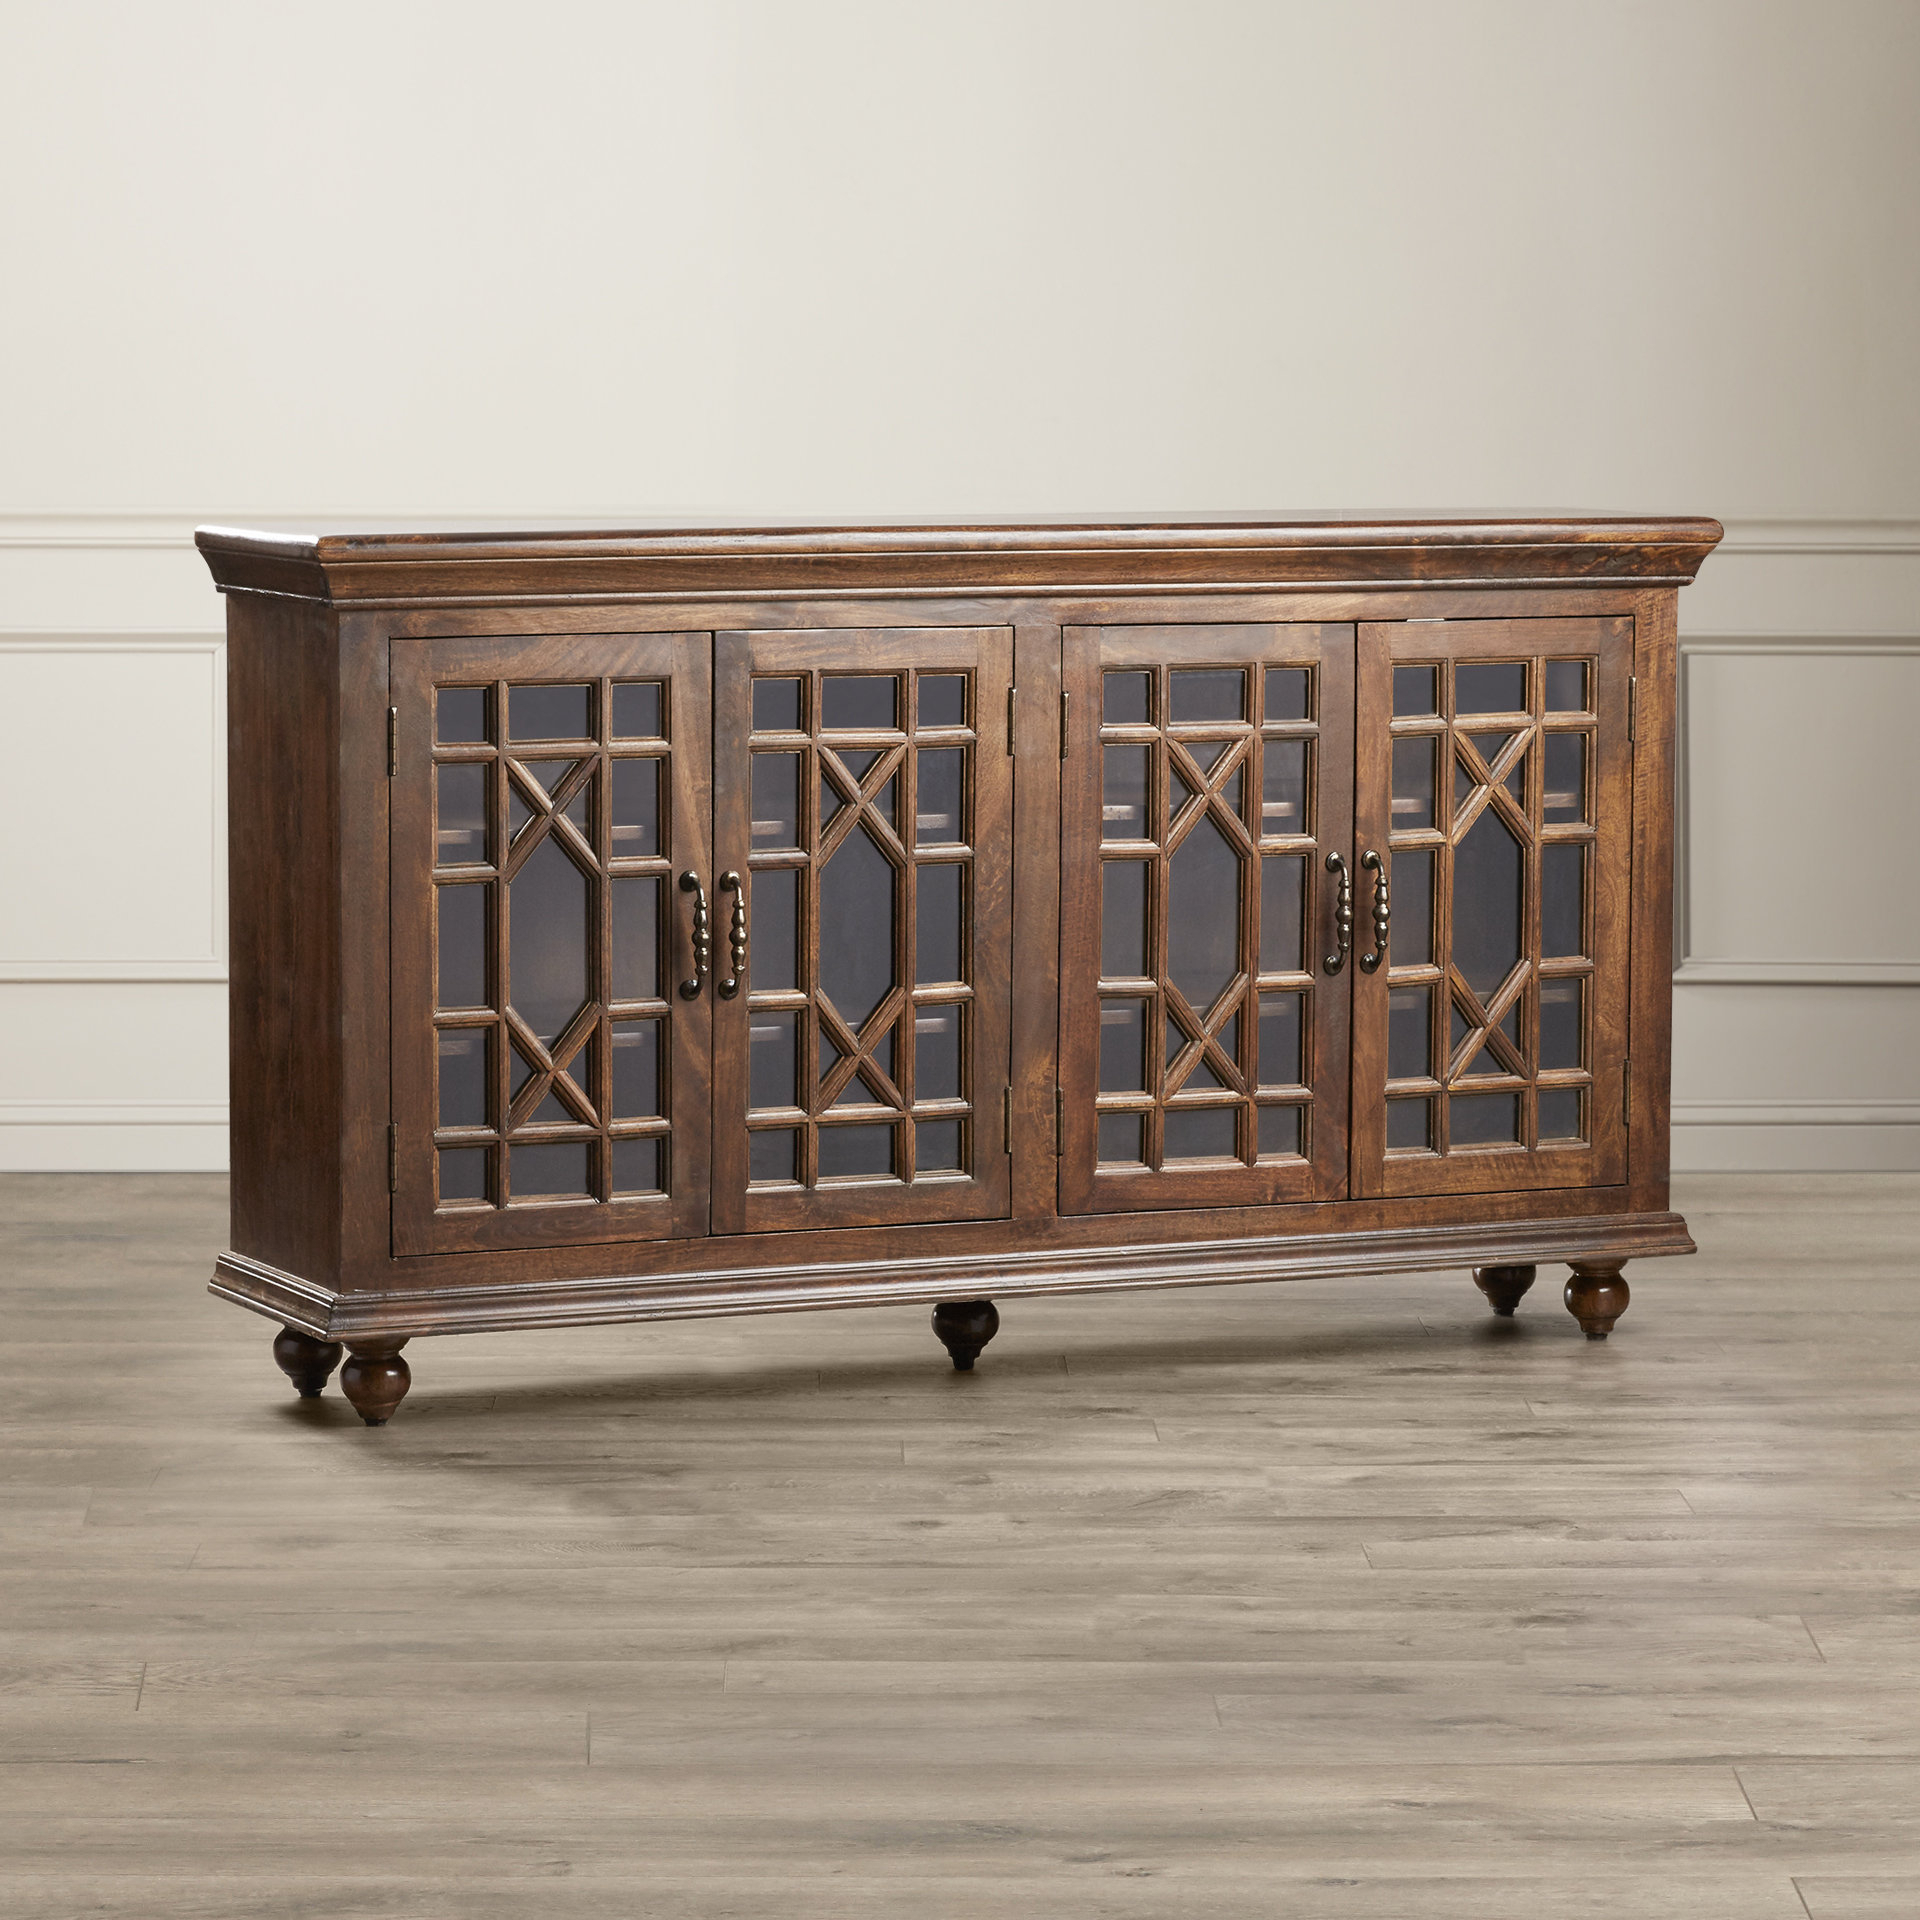 Popular Farmhouse & Rustic Darby Home Co Sideboards & Buffets Within Phyllis Sideboards (View 14 of 20)